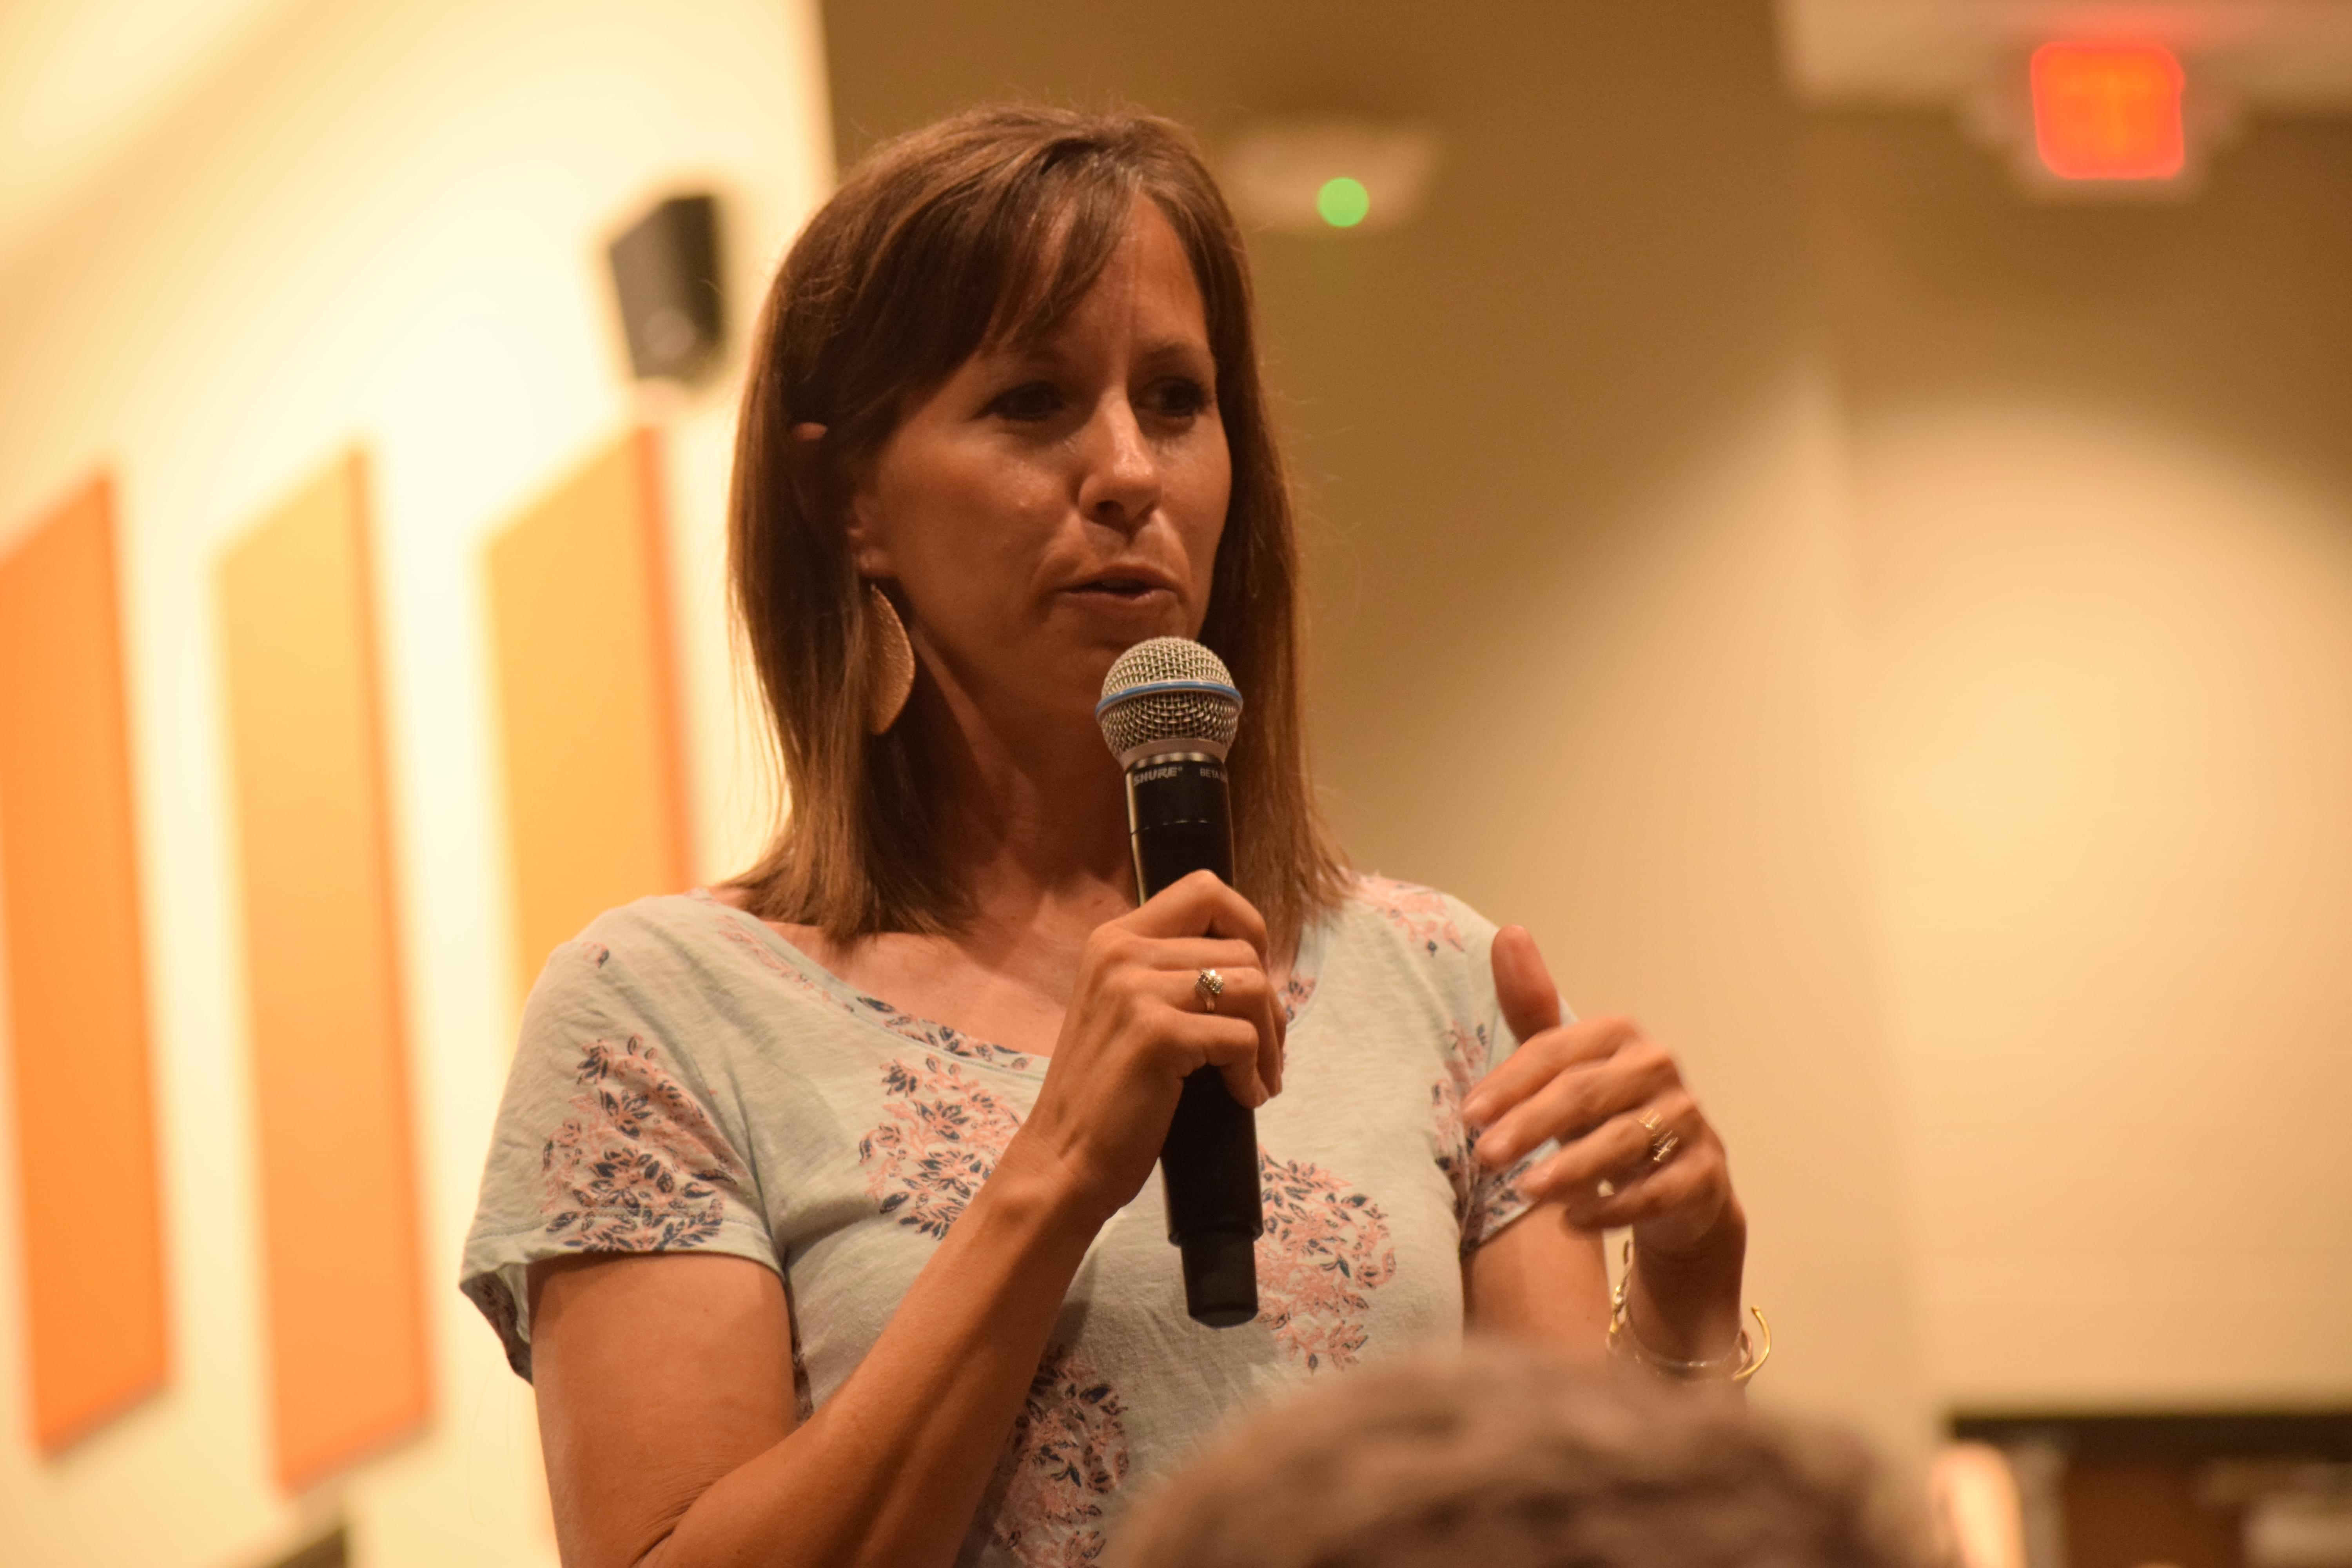 Jodi Eisenmann is one of 17 plaintiffs in a lawsuit filed against People's Gas. She spoke out about her present situation during a Mahomet Aquifer Task Force meeting on Monday in Mahomet.